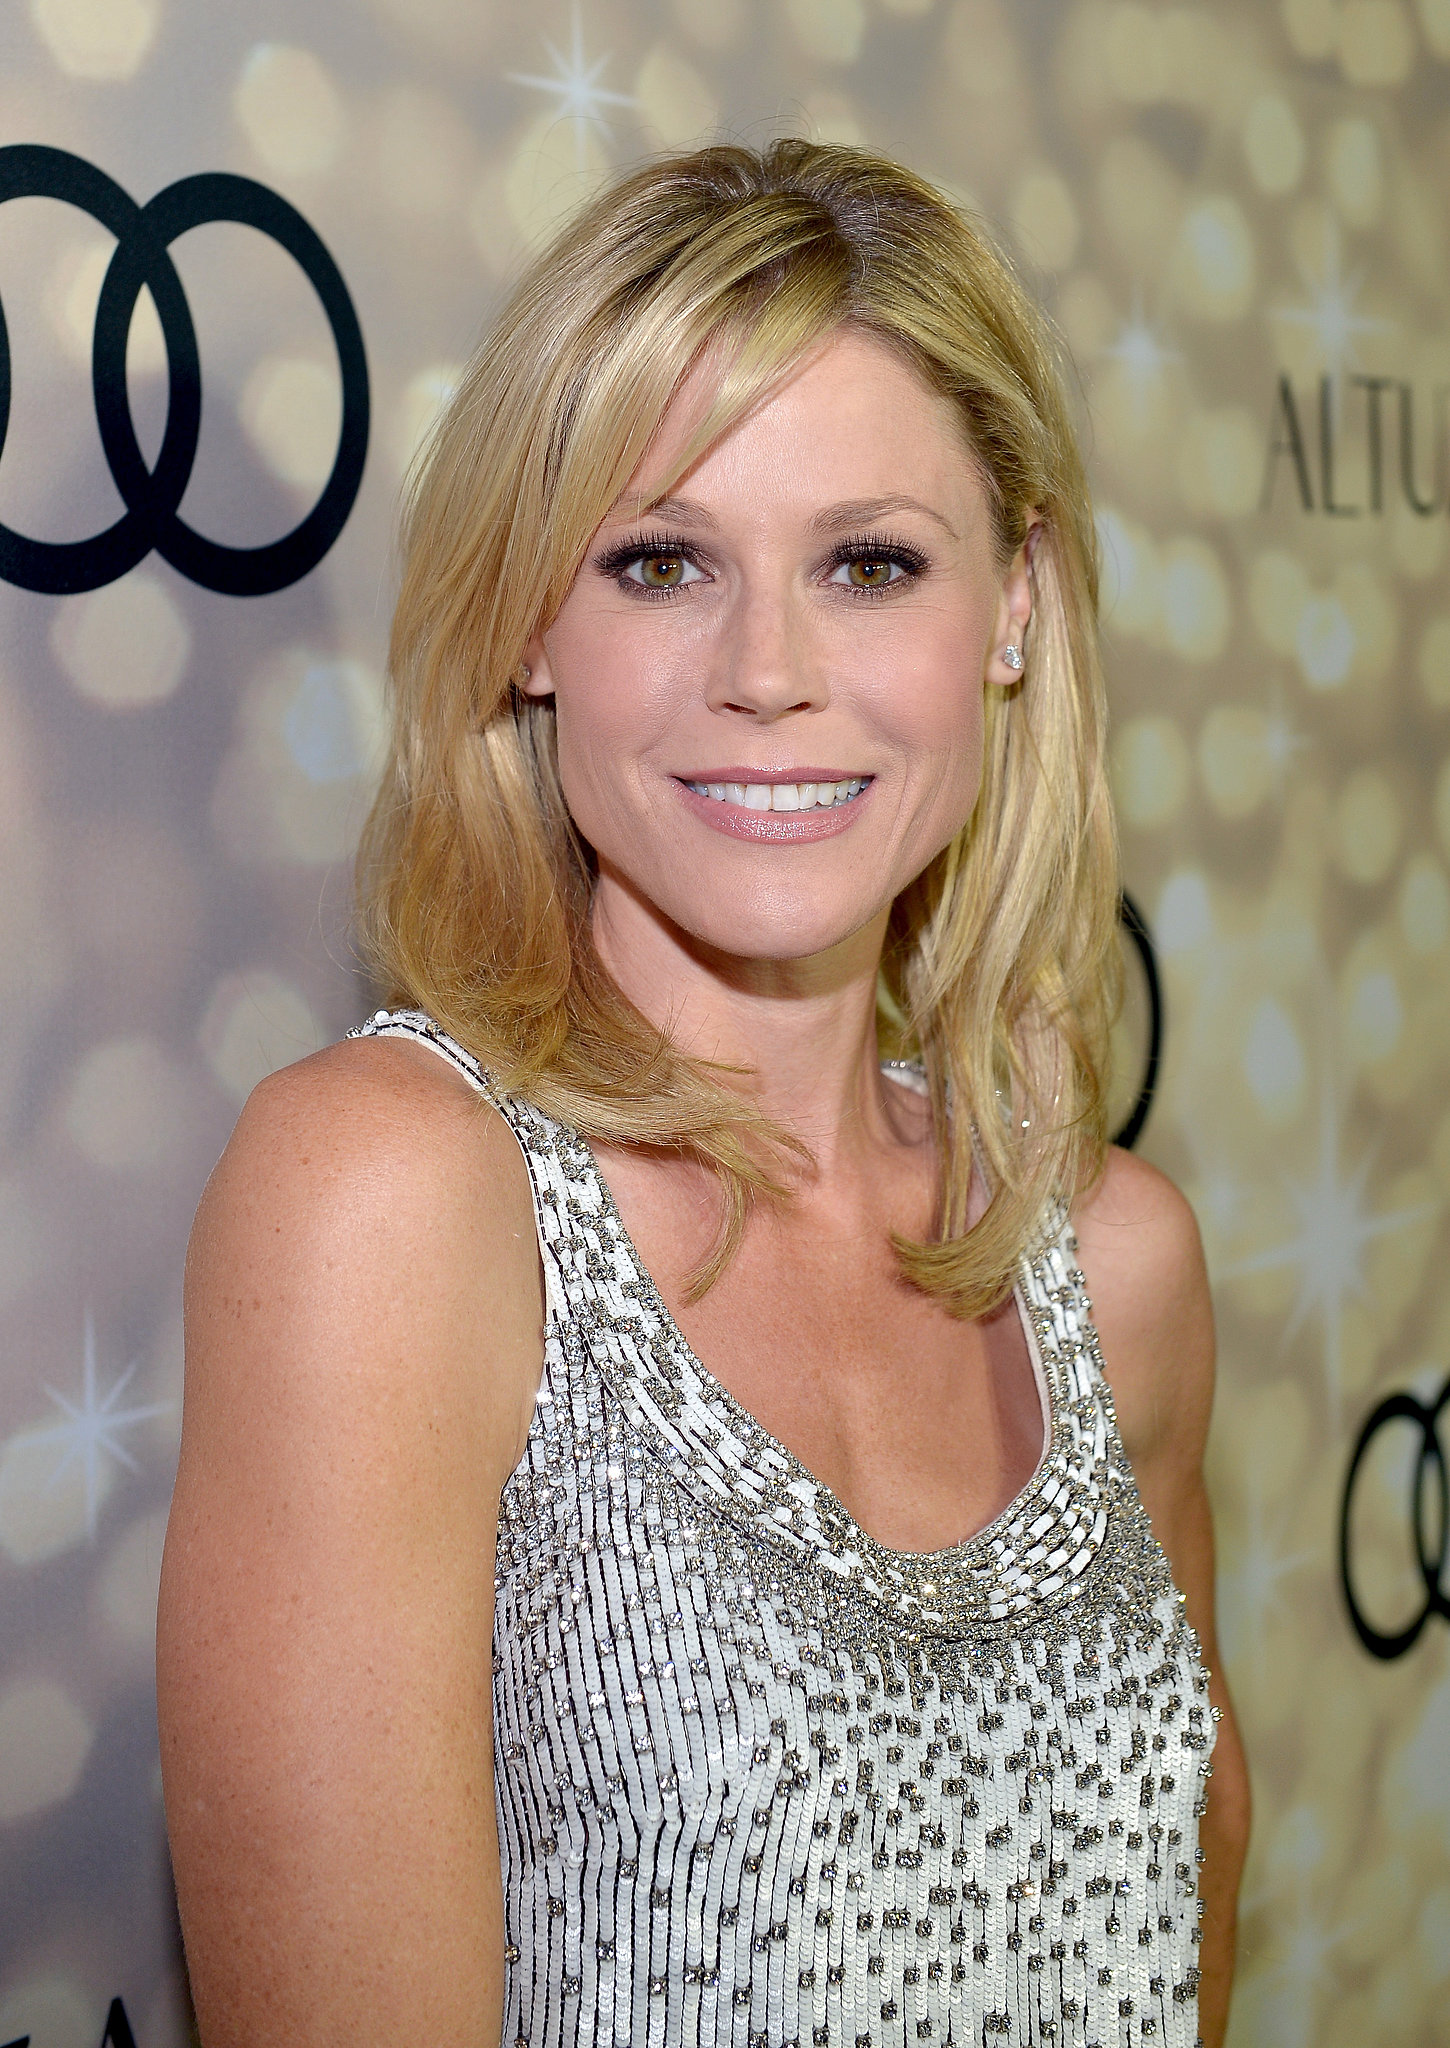 We loved Julie Bowen's sig